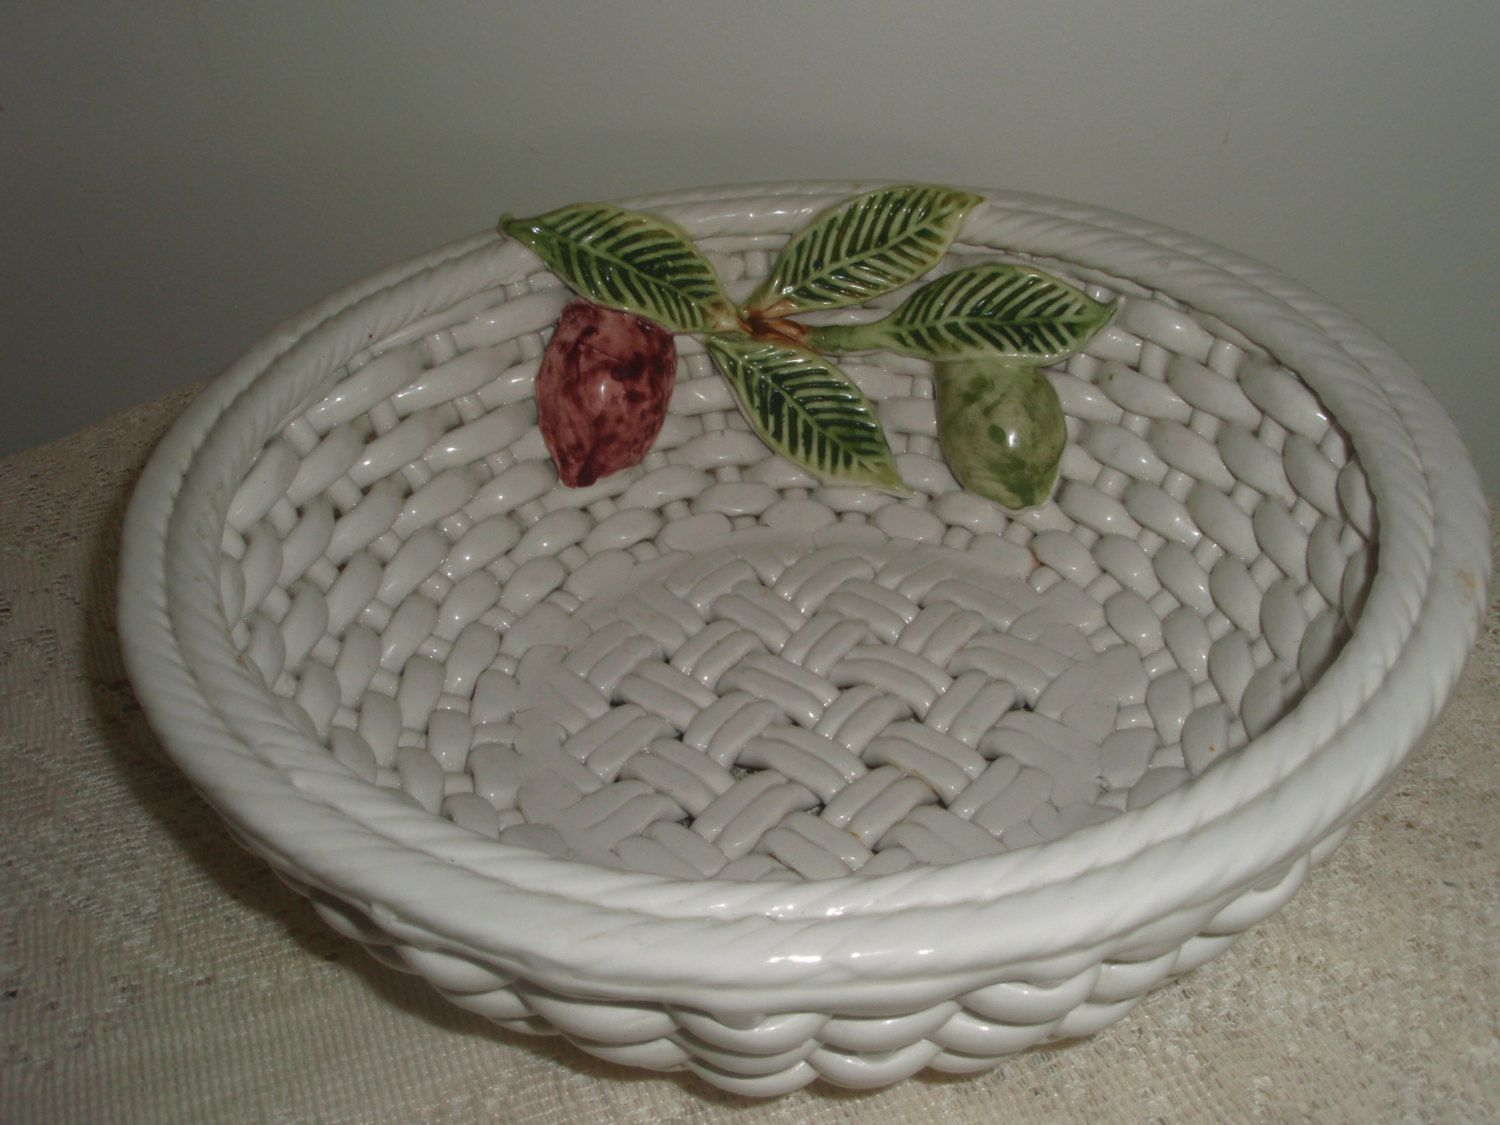 Woven Ceramic Bowl Large White Fruit Handmade In Portugal And Artist